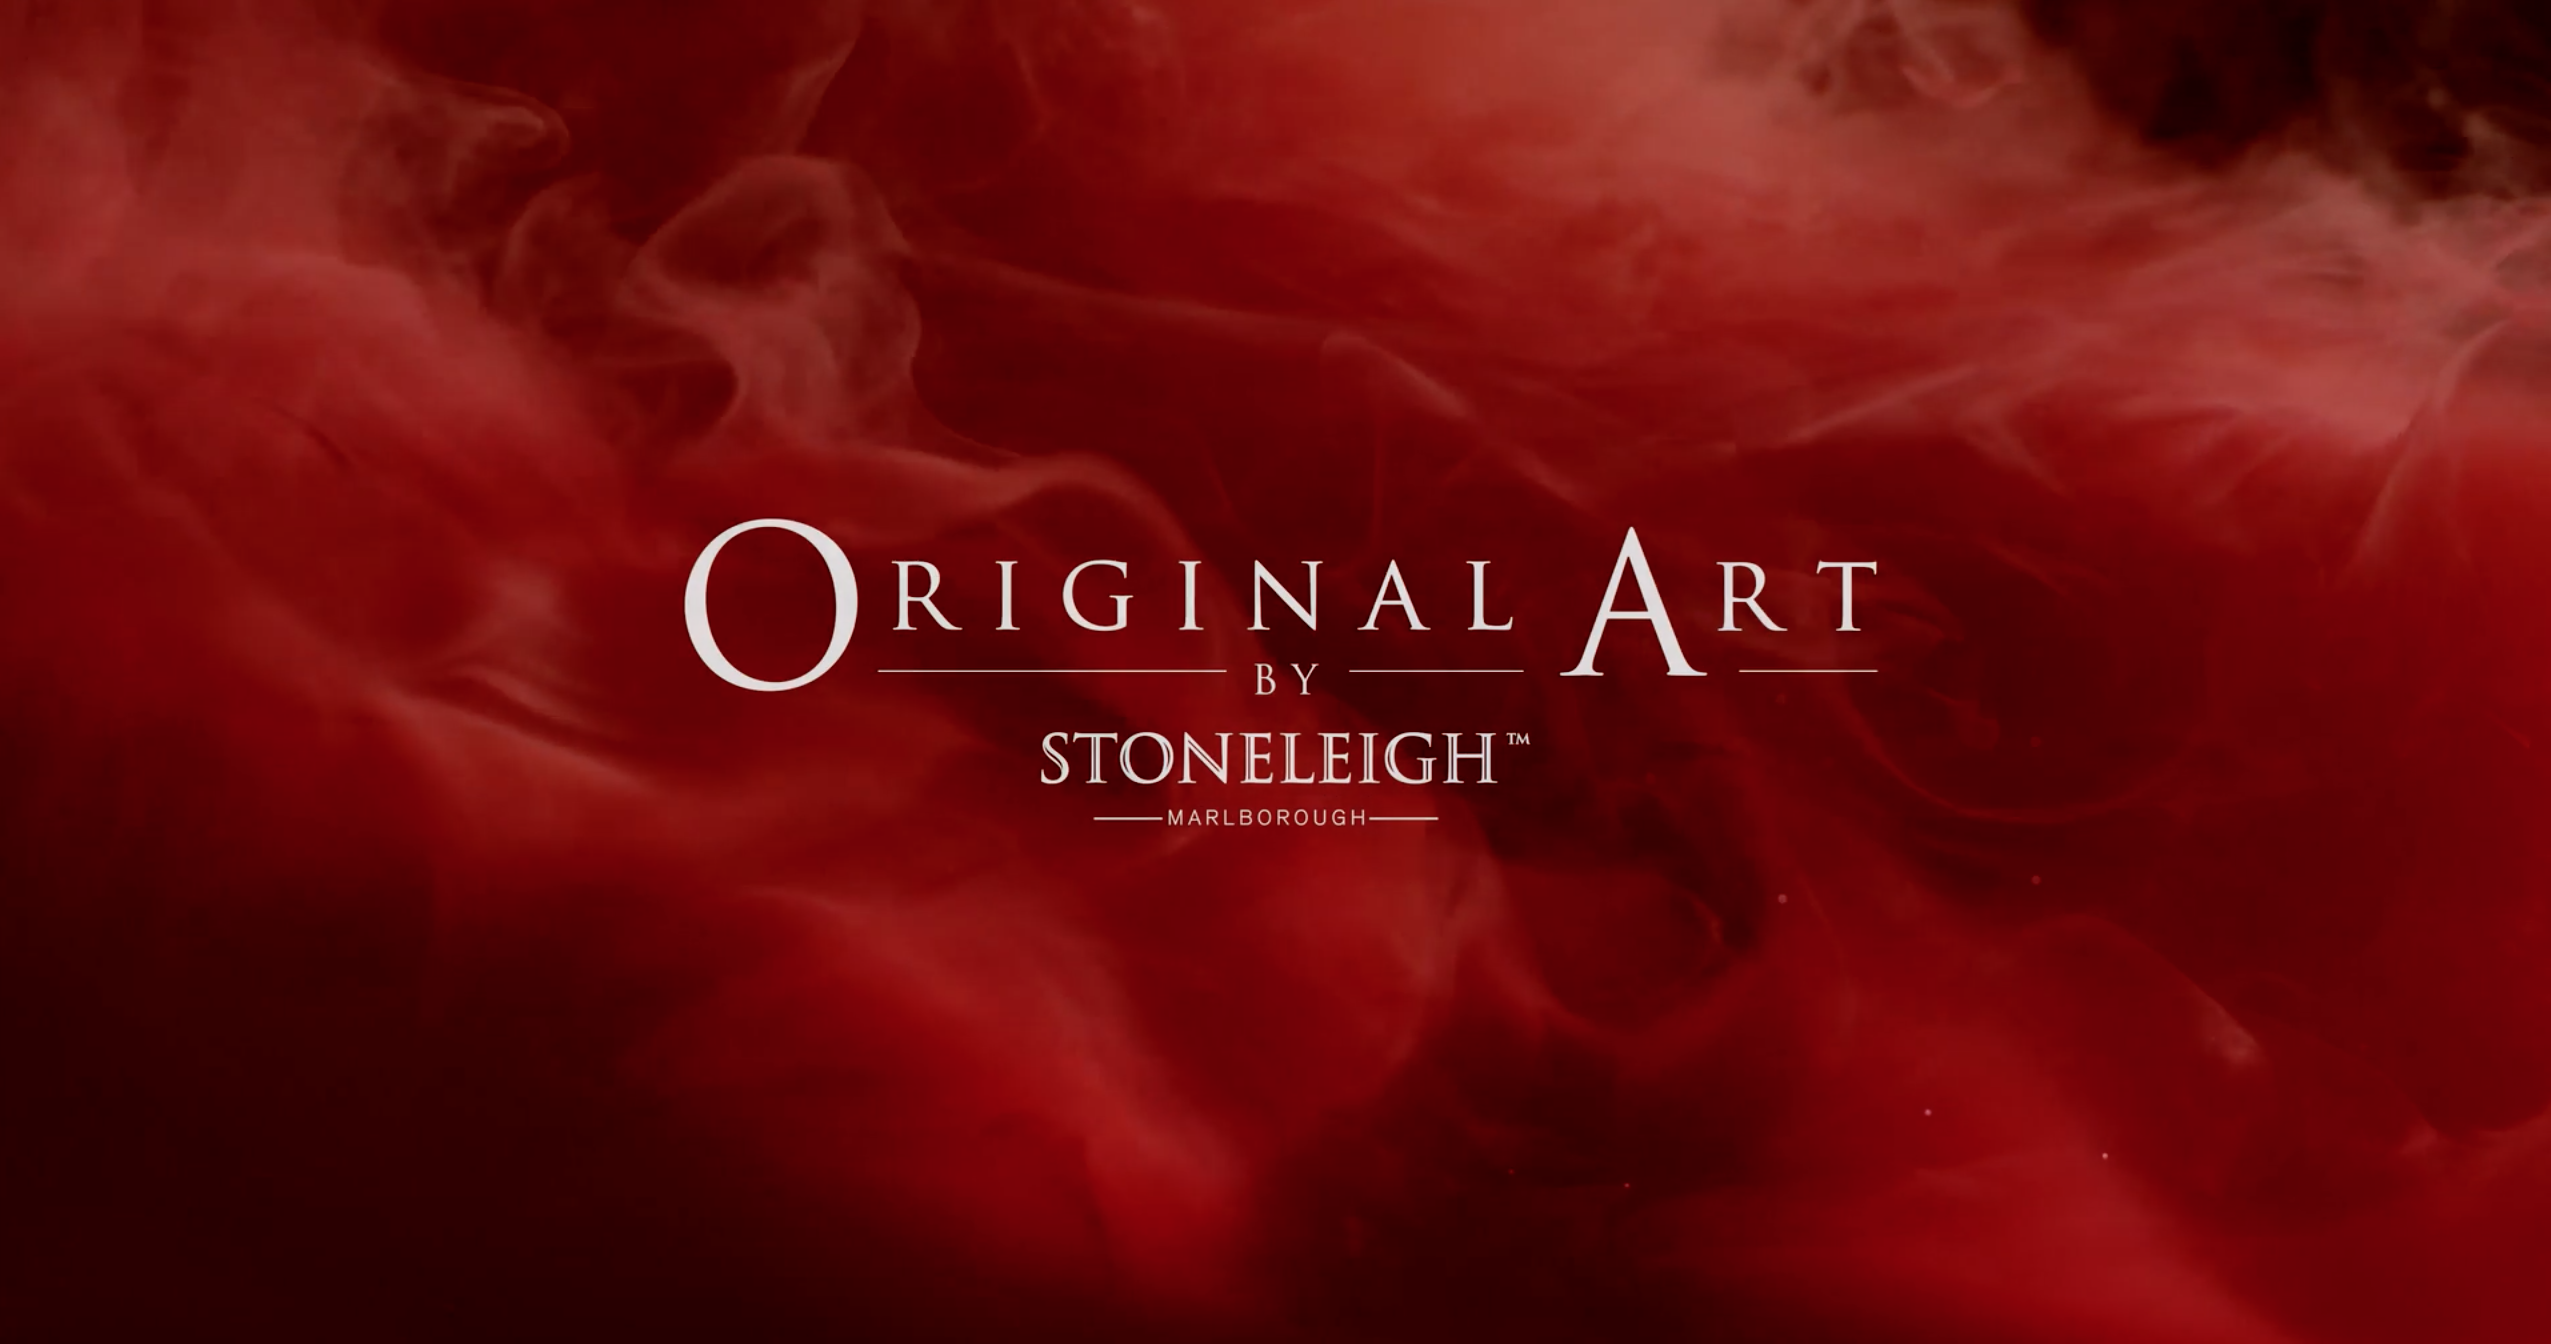 Thumbnail for Original Art by Stoneleigh